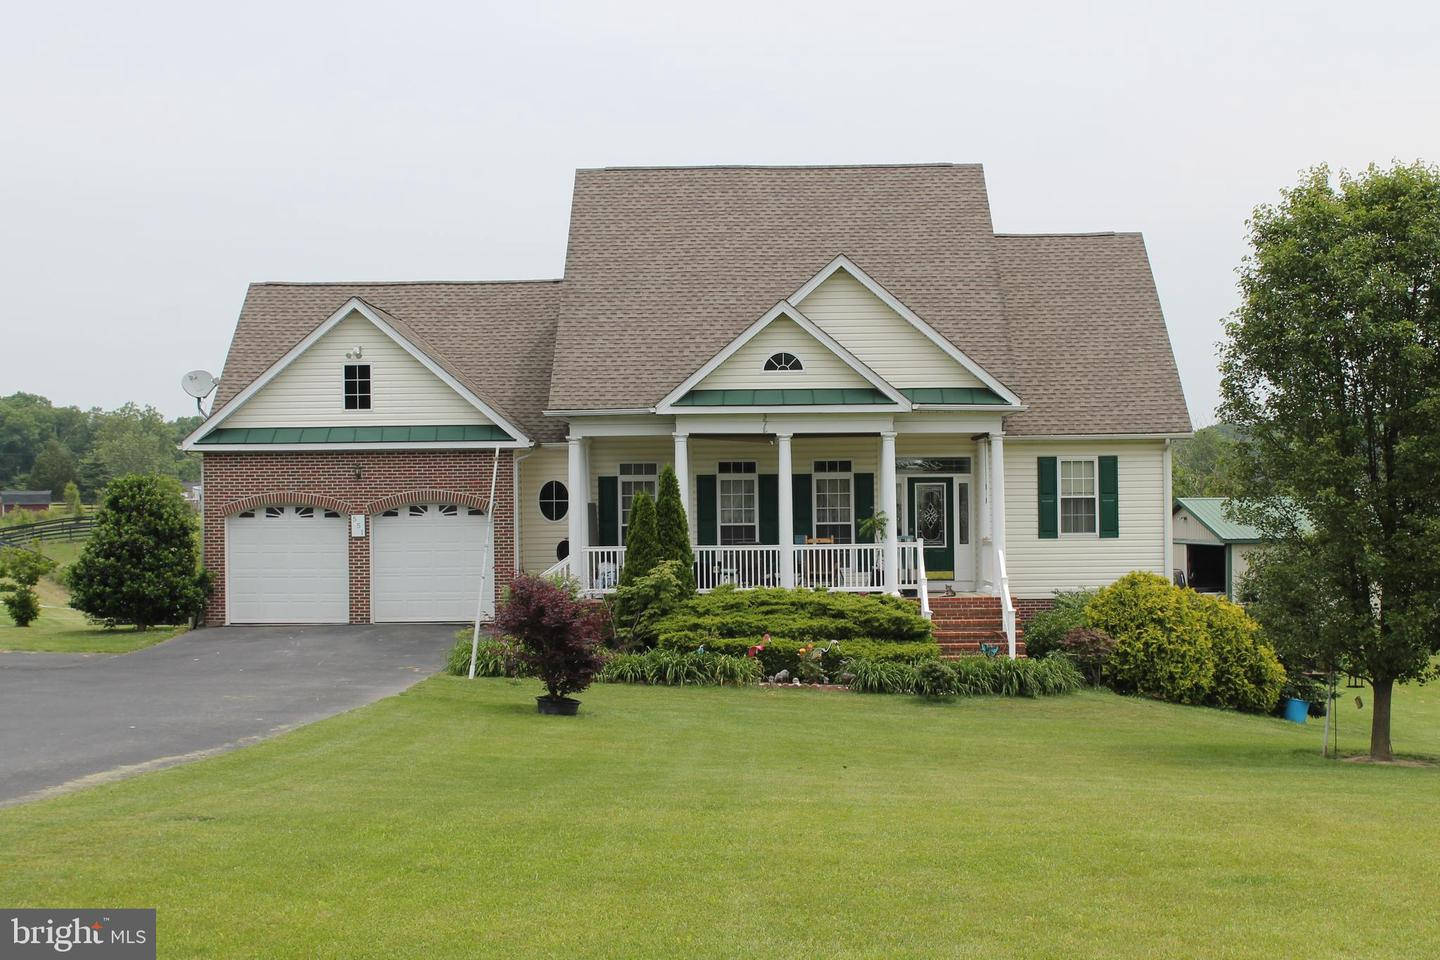 Single Family for Sale at 551 N Buckton Rd 551 N Buckton Rd Middletown, Virginia 22645 United States